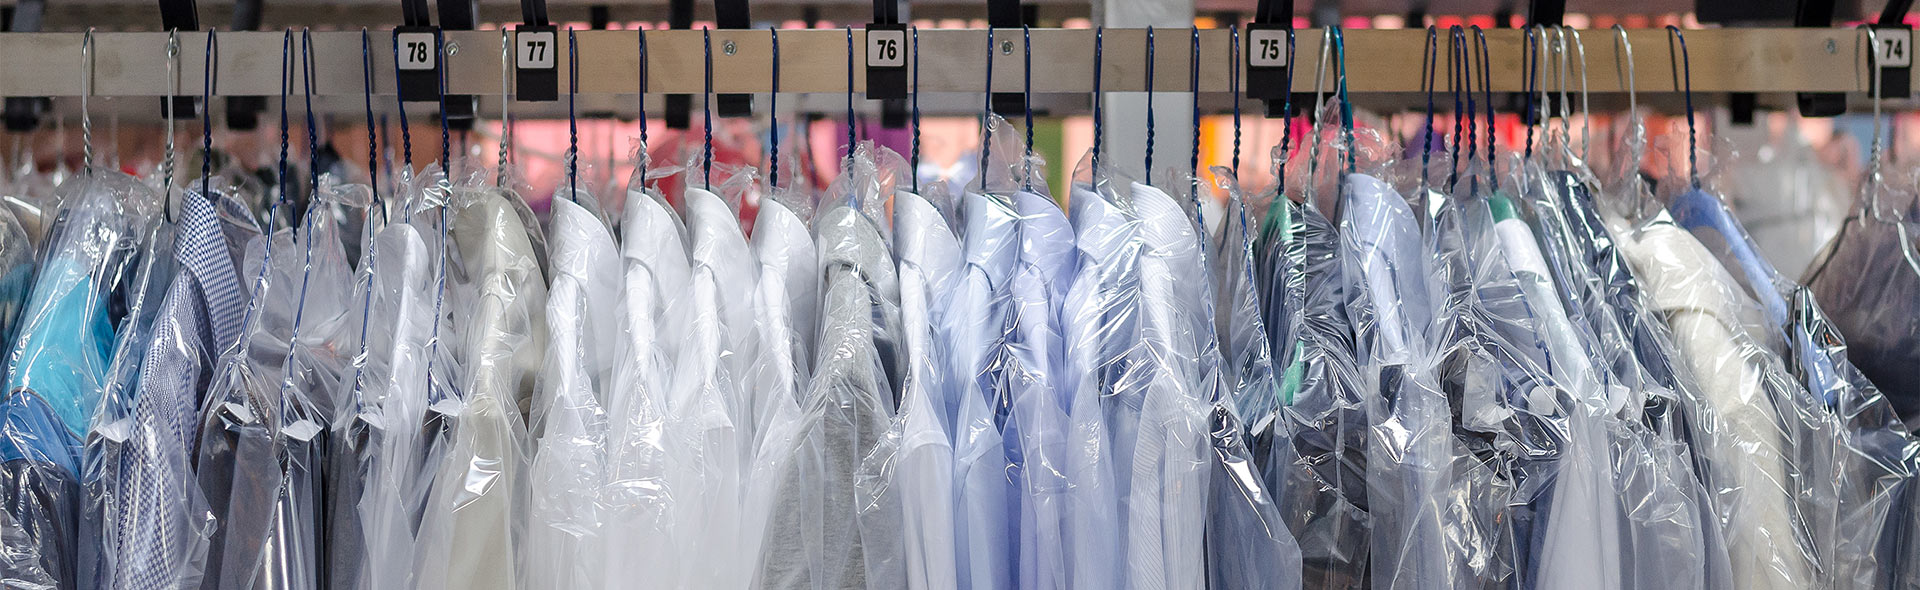 Phoenix dry cleaners and dry cleaning clothing repair dry cleaning services in phoenix az solutioingenieria Images